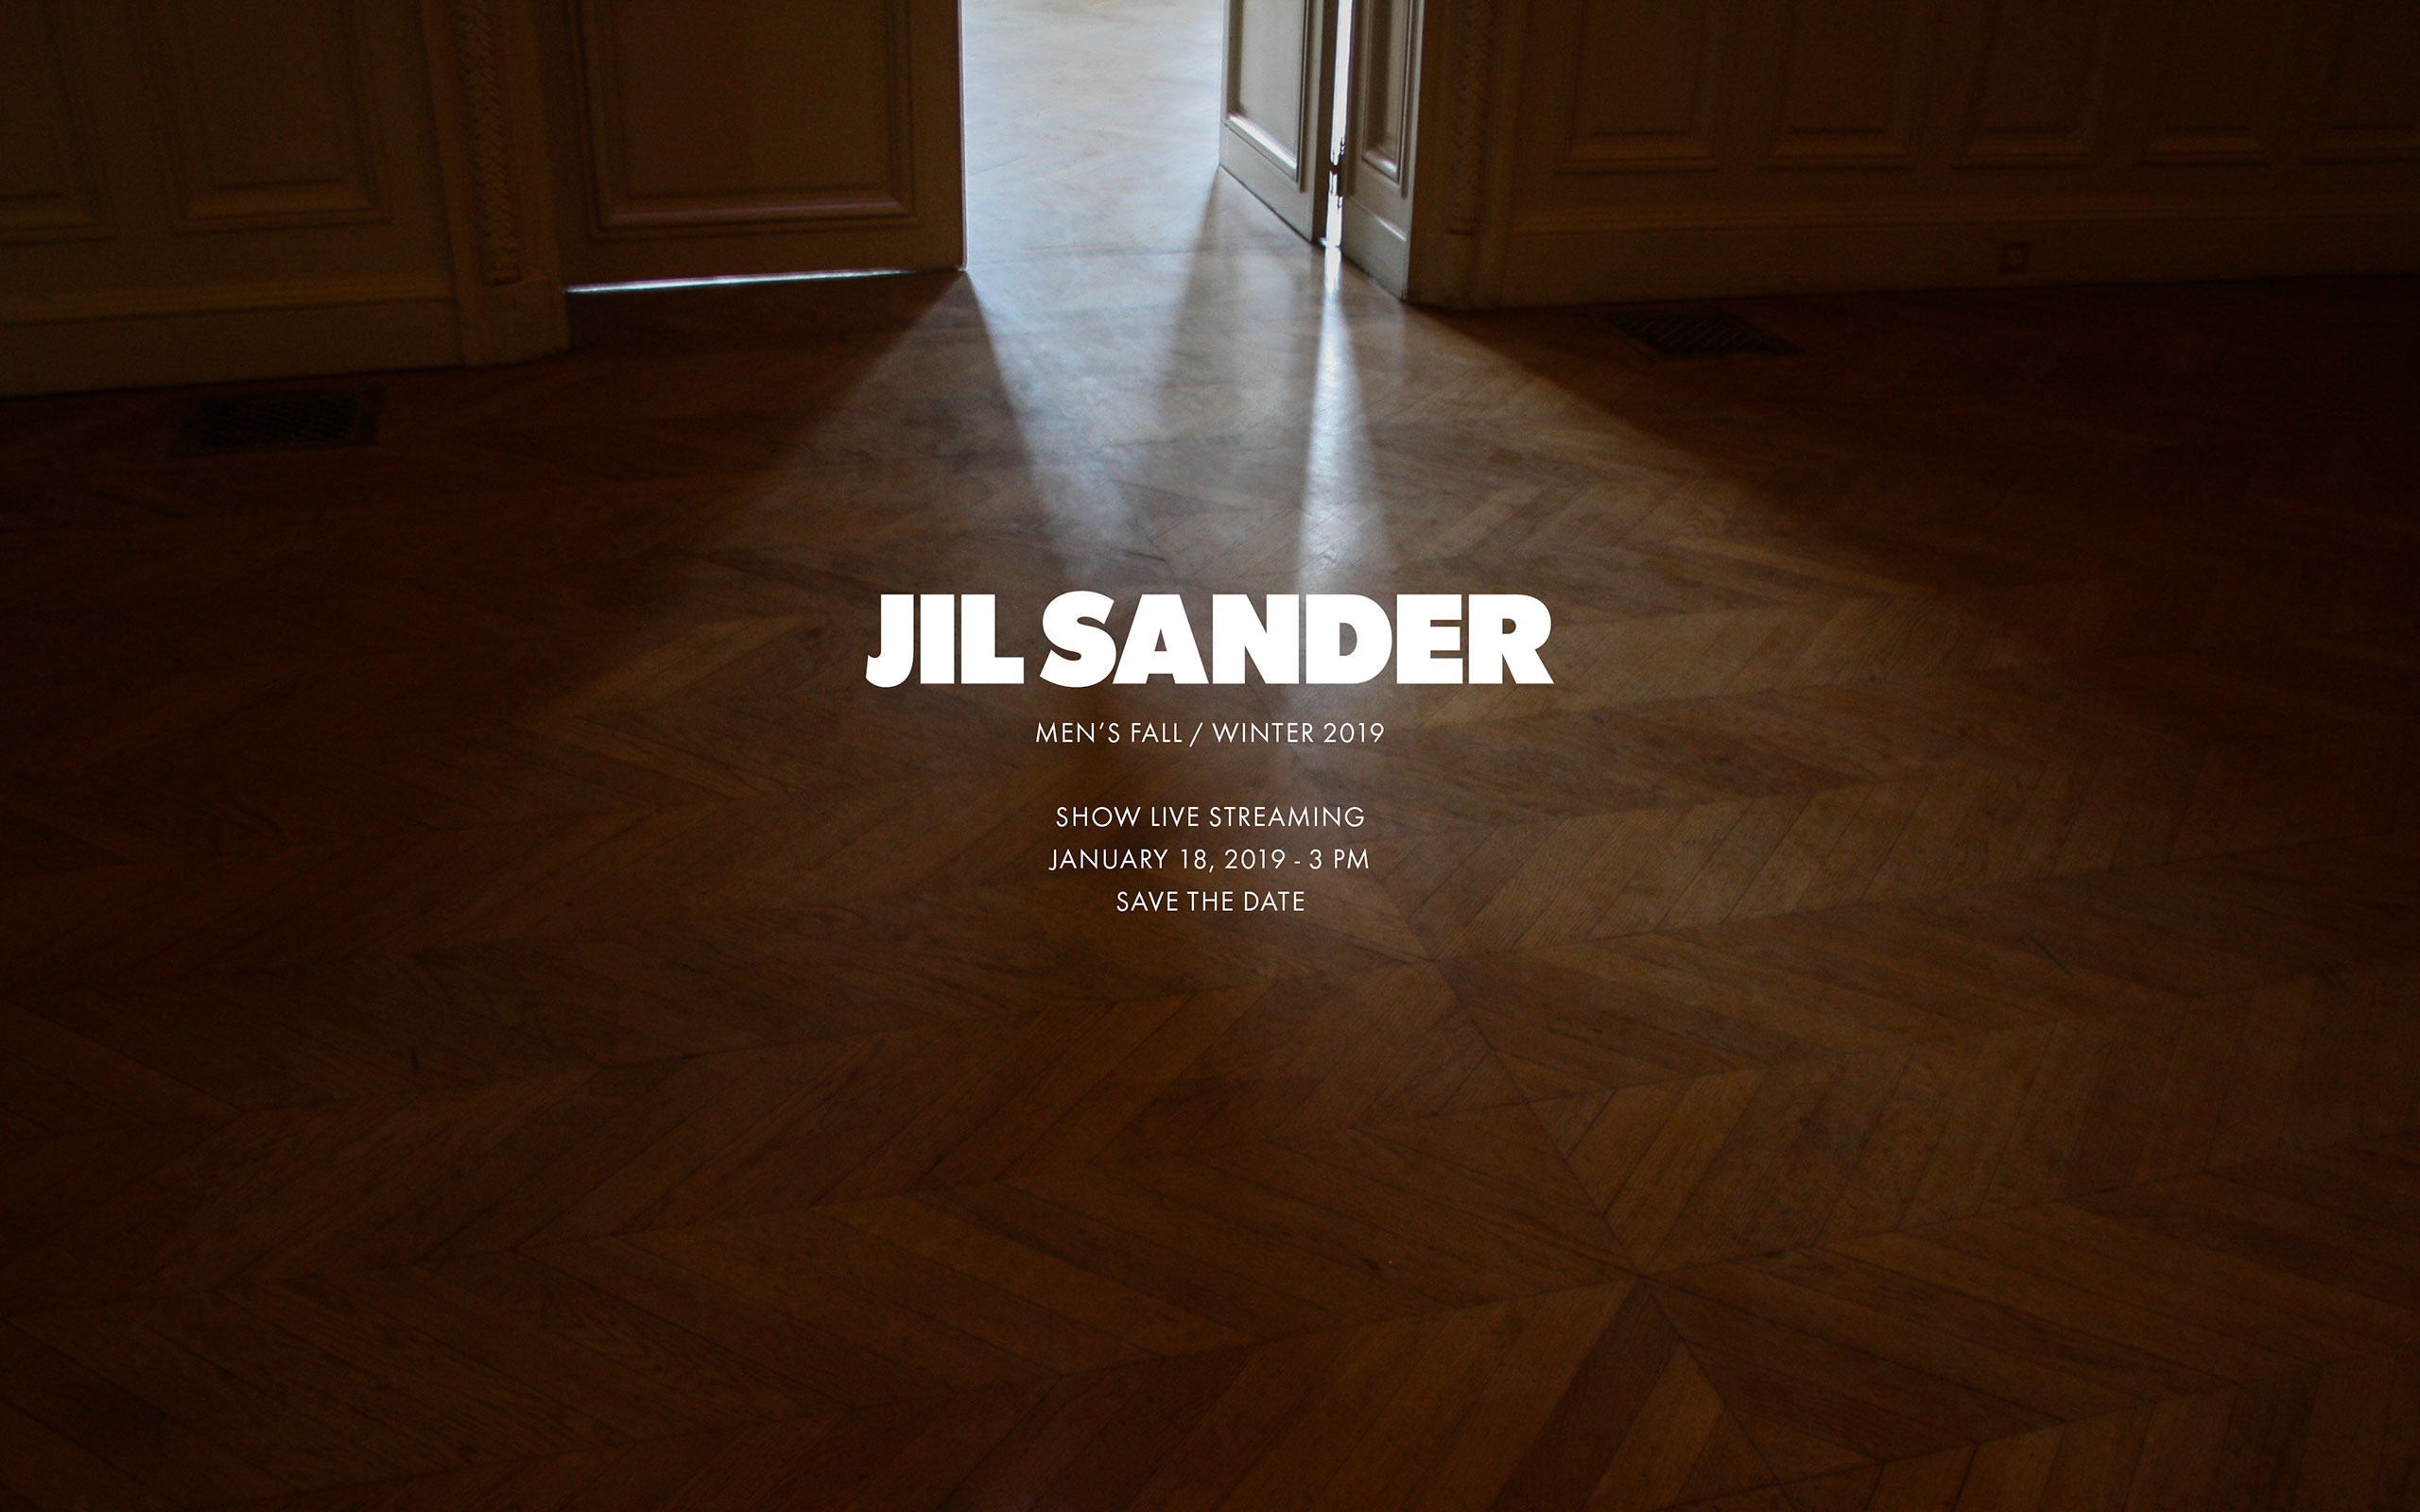 Now On Live: Jil Sander Fall Winter 2019 Men's Collection